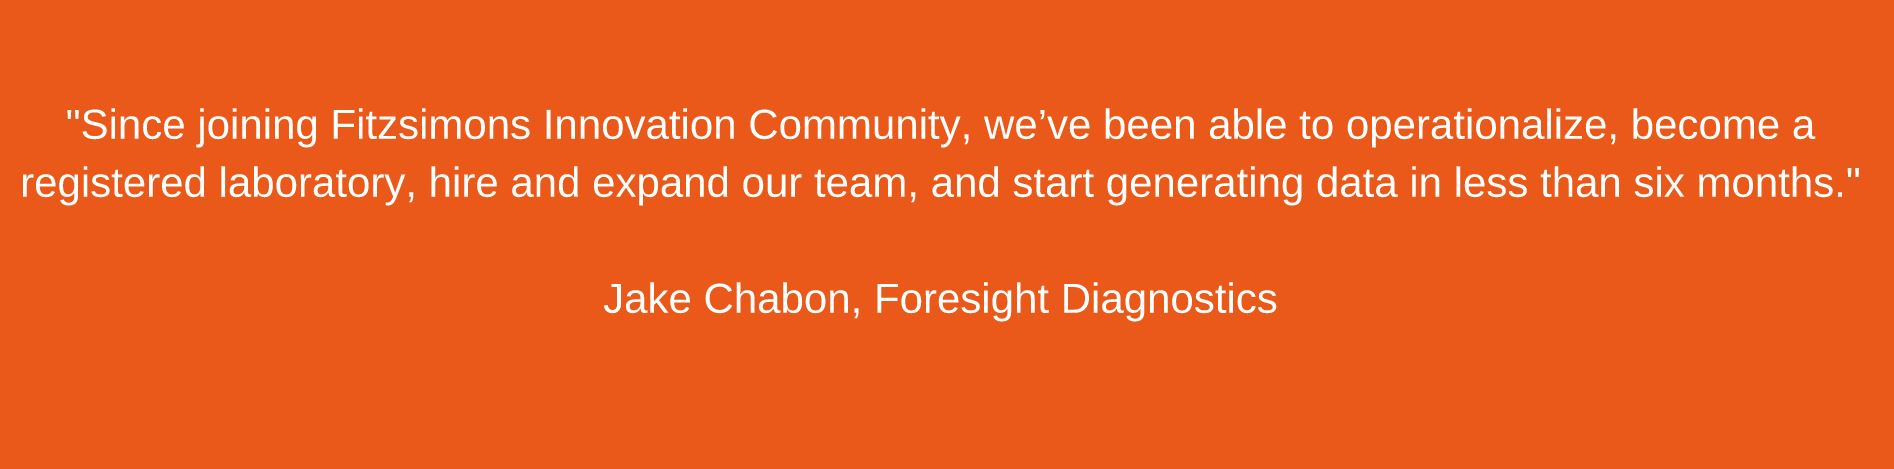 foresight quote